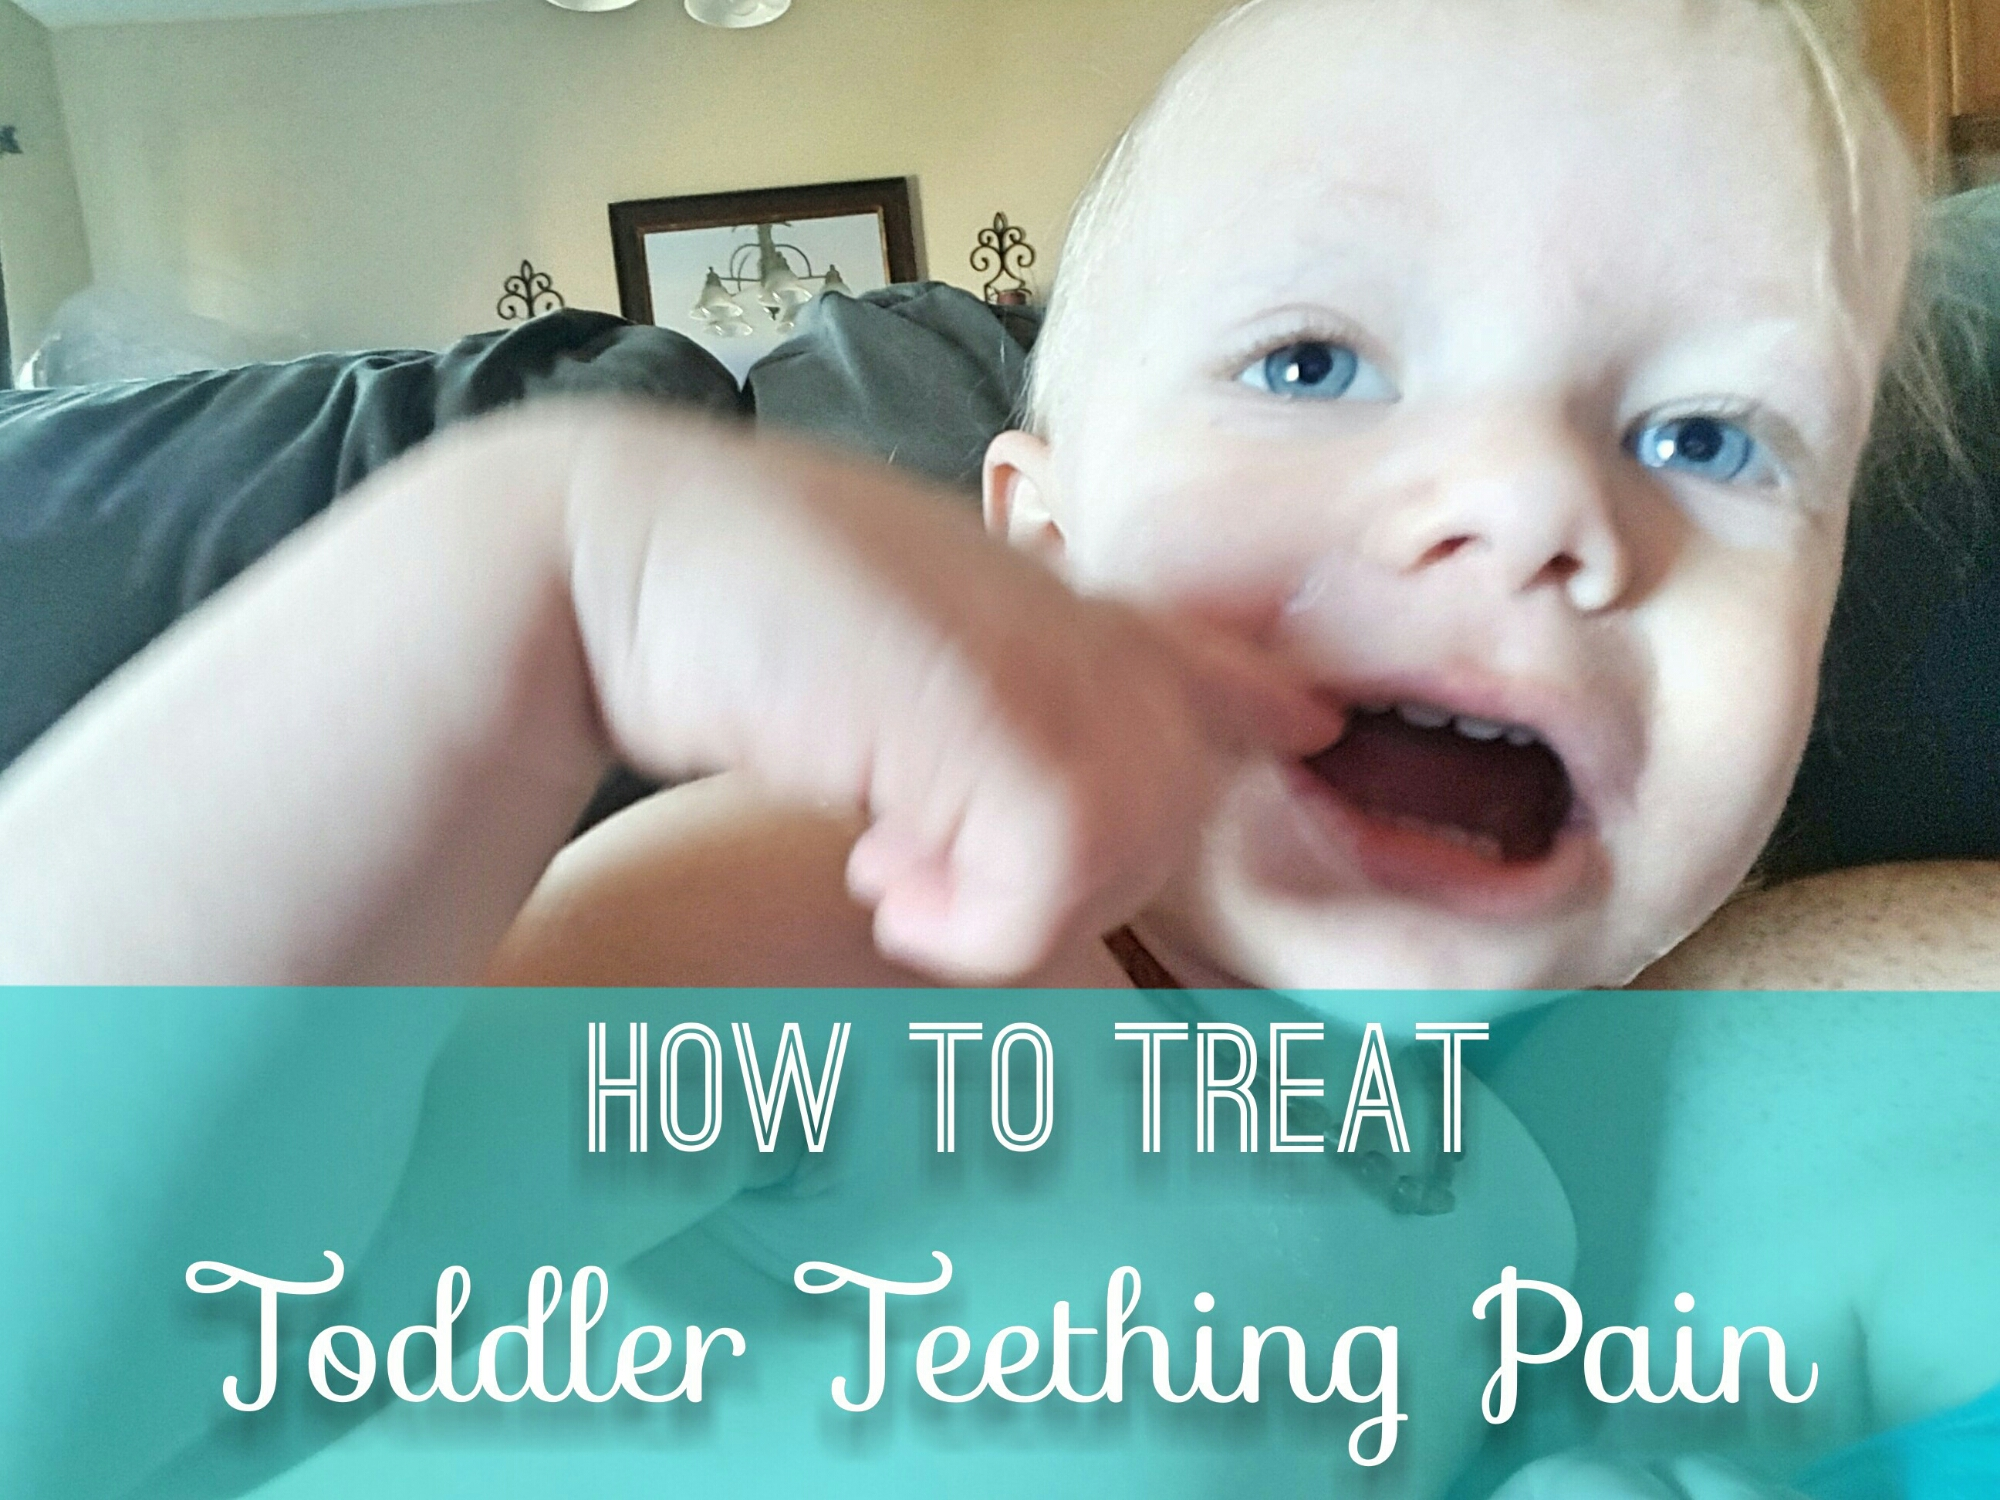 How to Treat Toddler Teething Pain